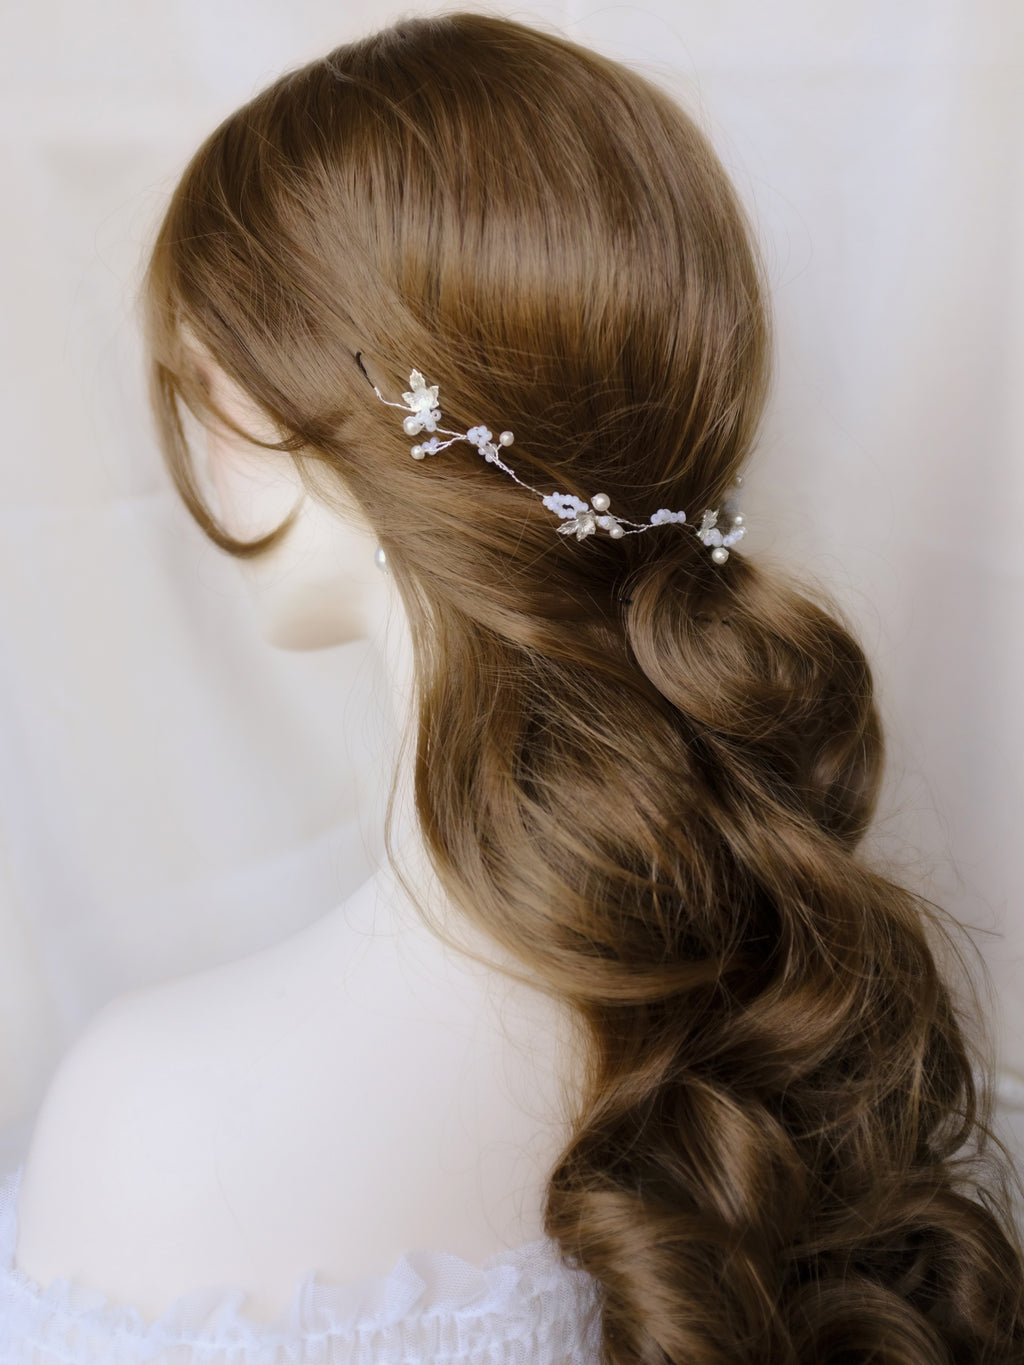 Ethereal bridal hair vine with silver leaves and white flowers for hair down wedding hairstyle